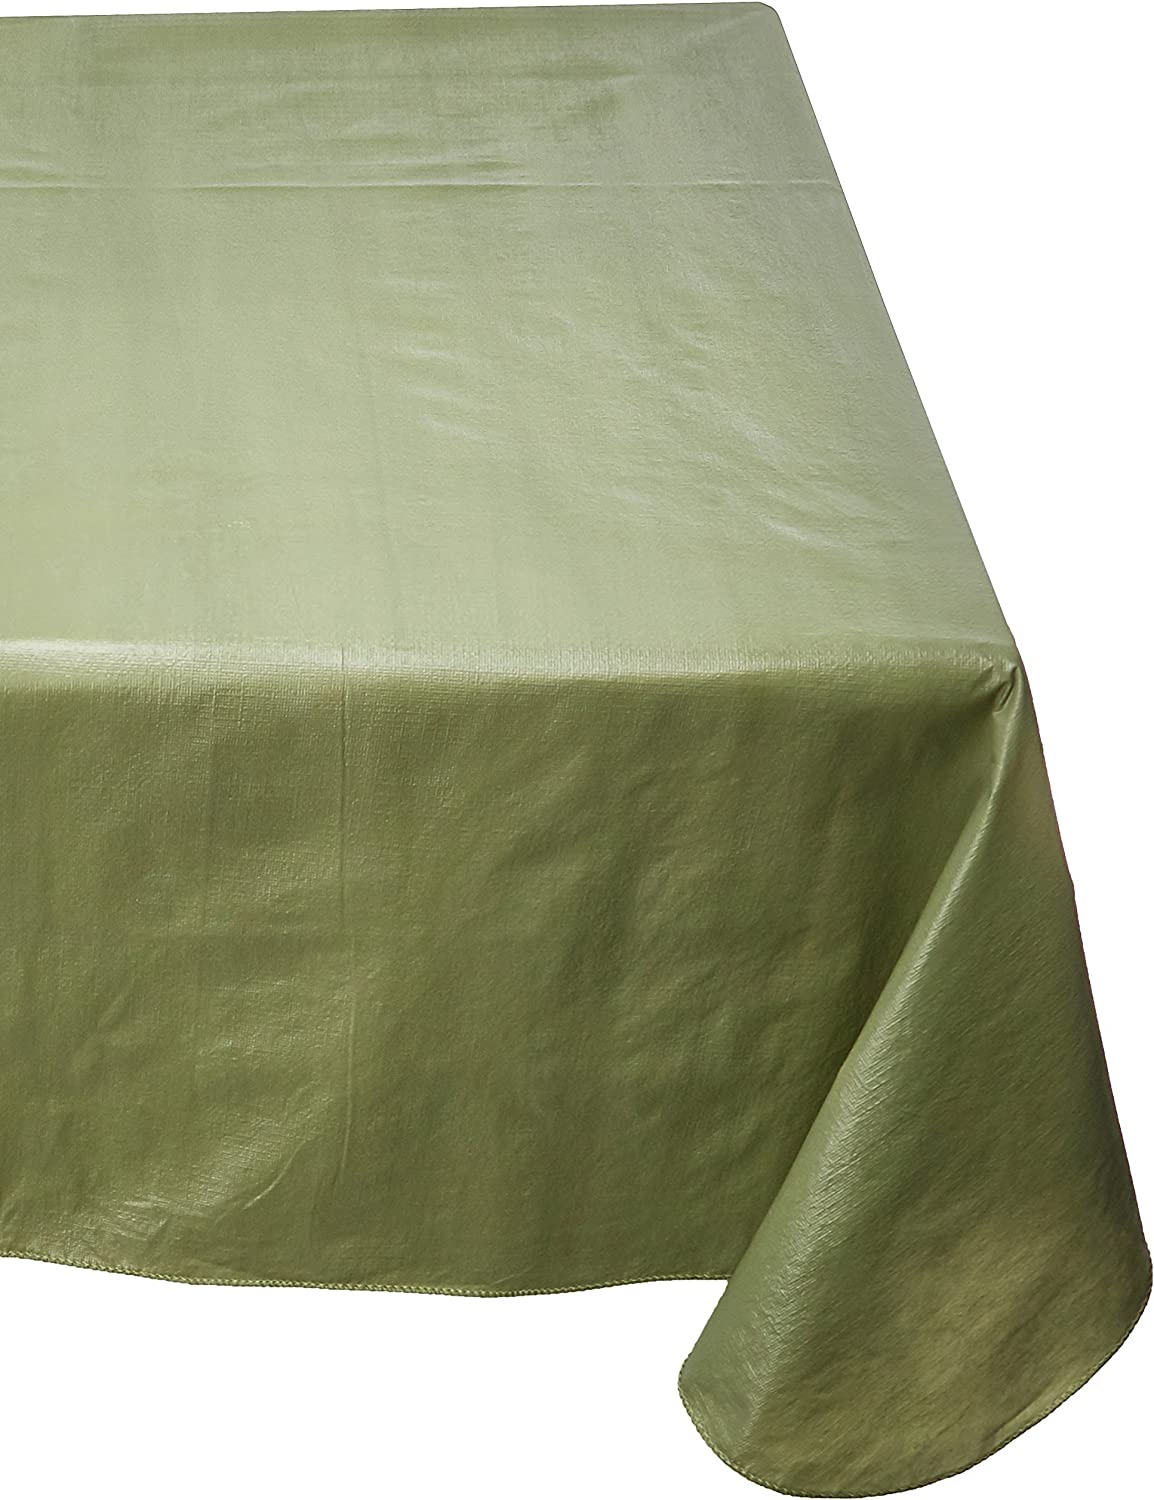 Carnation Home Fashions Vinyl Tablecloth with Polyester Flannel Backing, 52-Inch, by 70-Inch, Sage (SFLN-70/42)